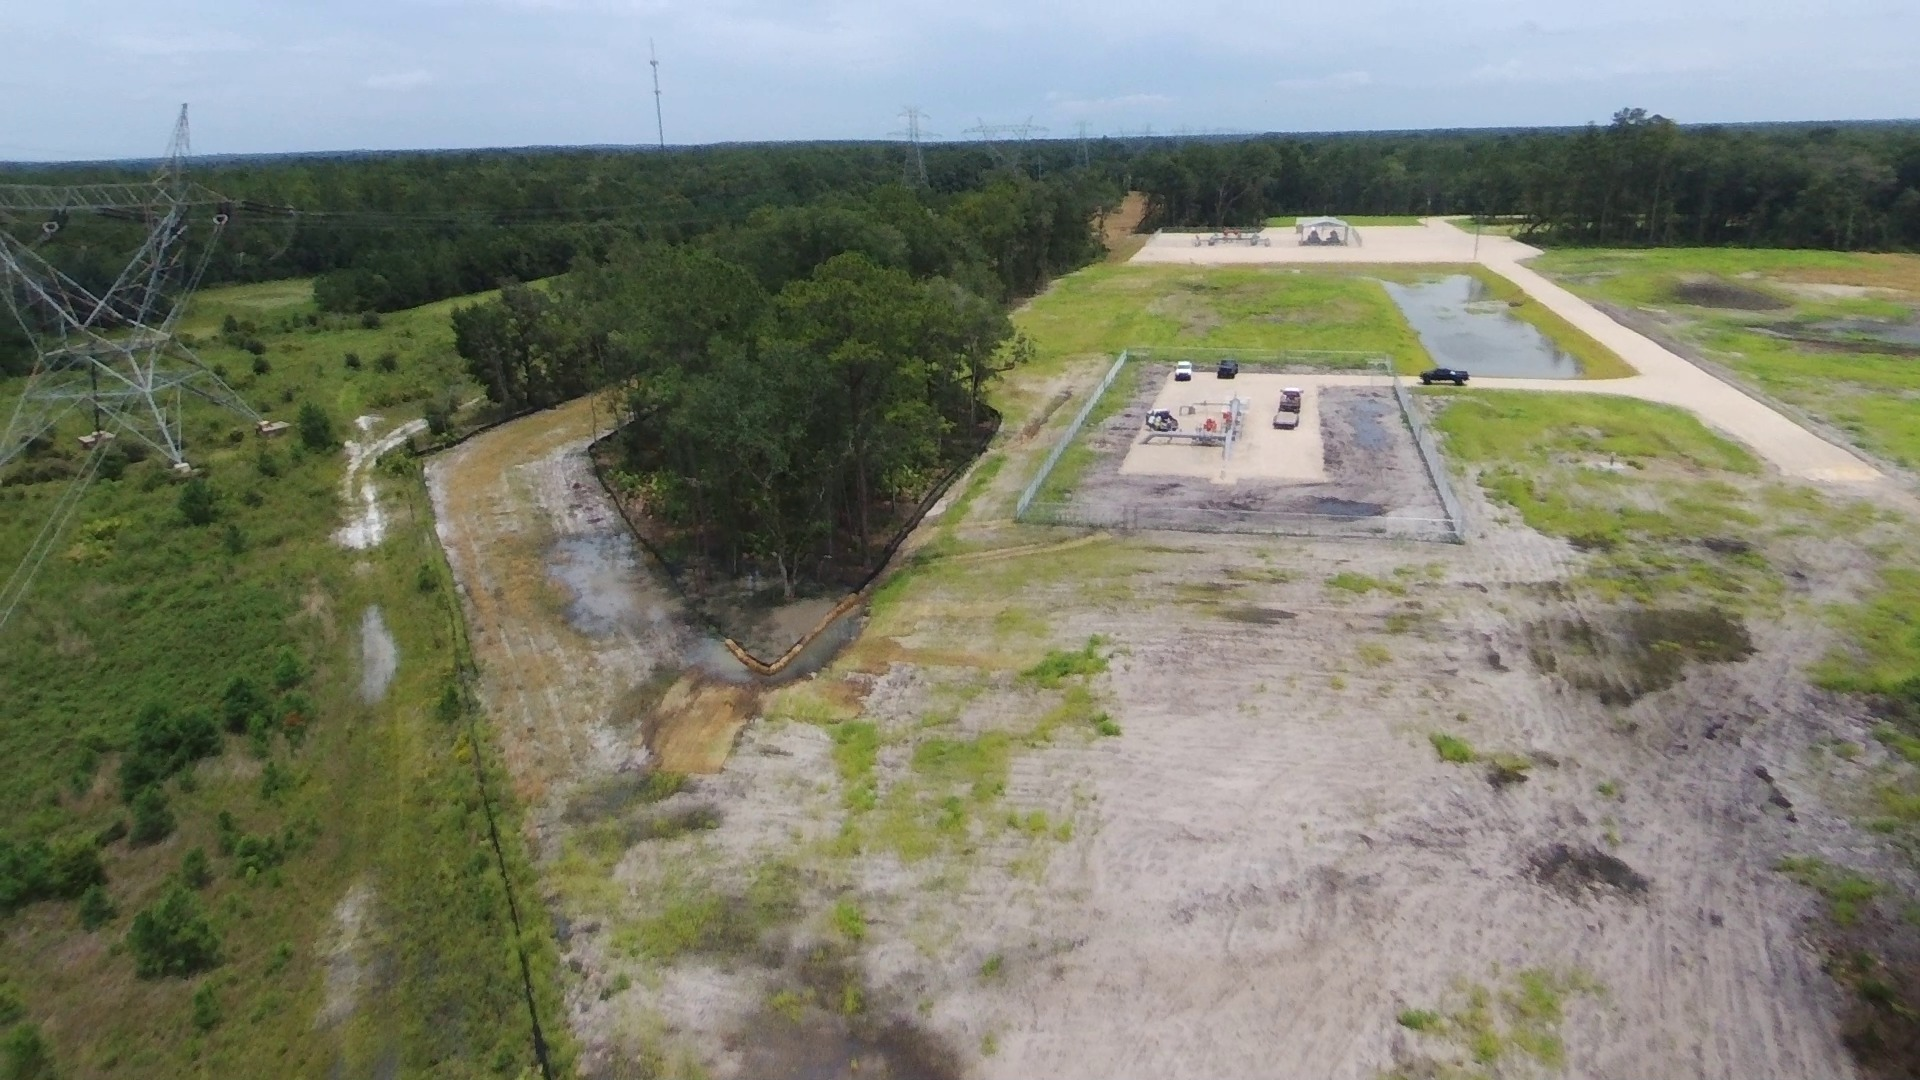 1920x1080 Tree berm, in Sabal Trail Dunnellon Compressor Station, by John S. Quarterman, for WWALS.net, 24 July 2017